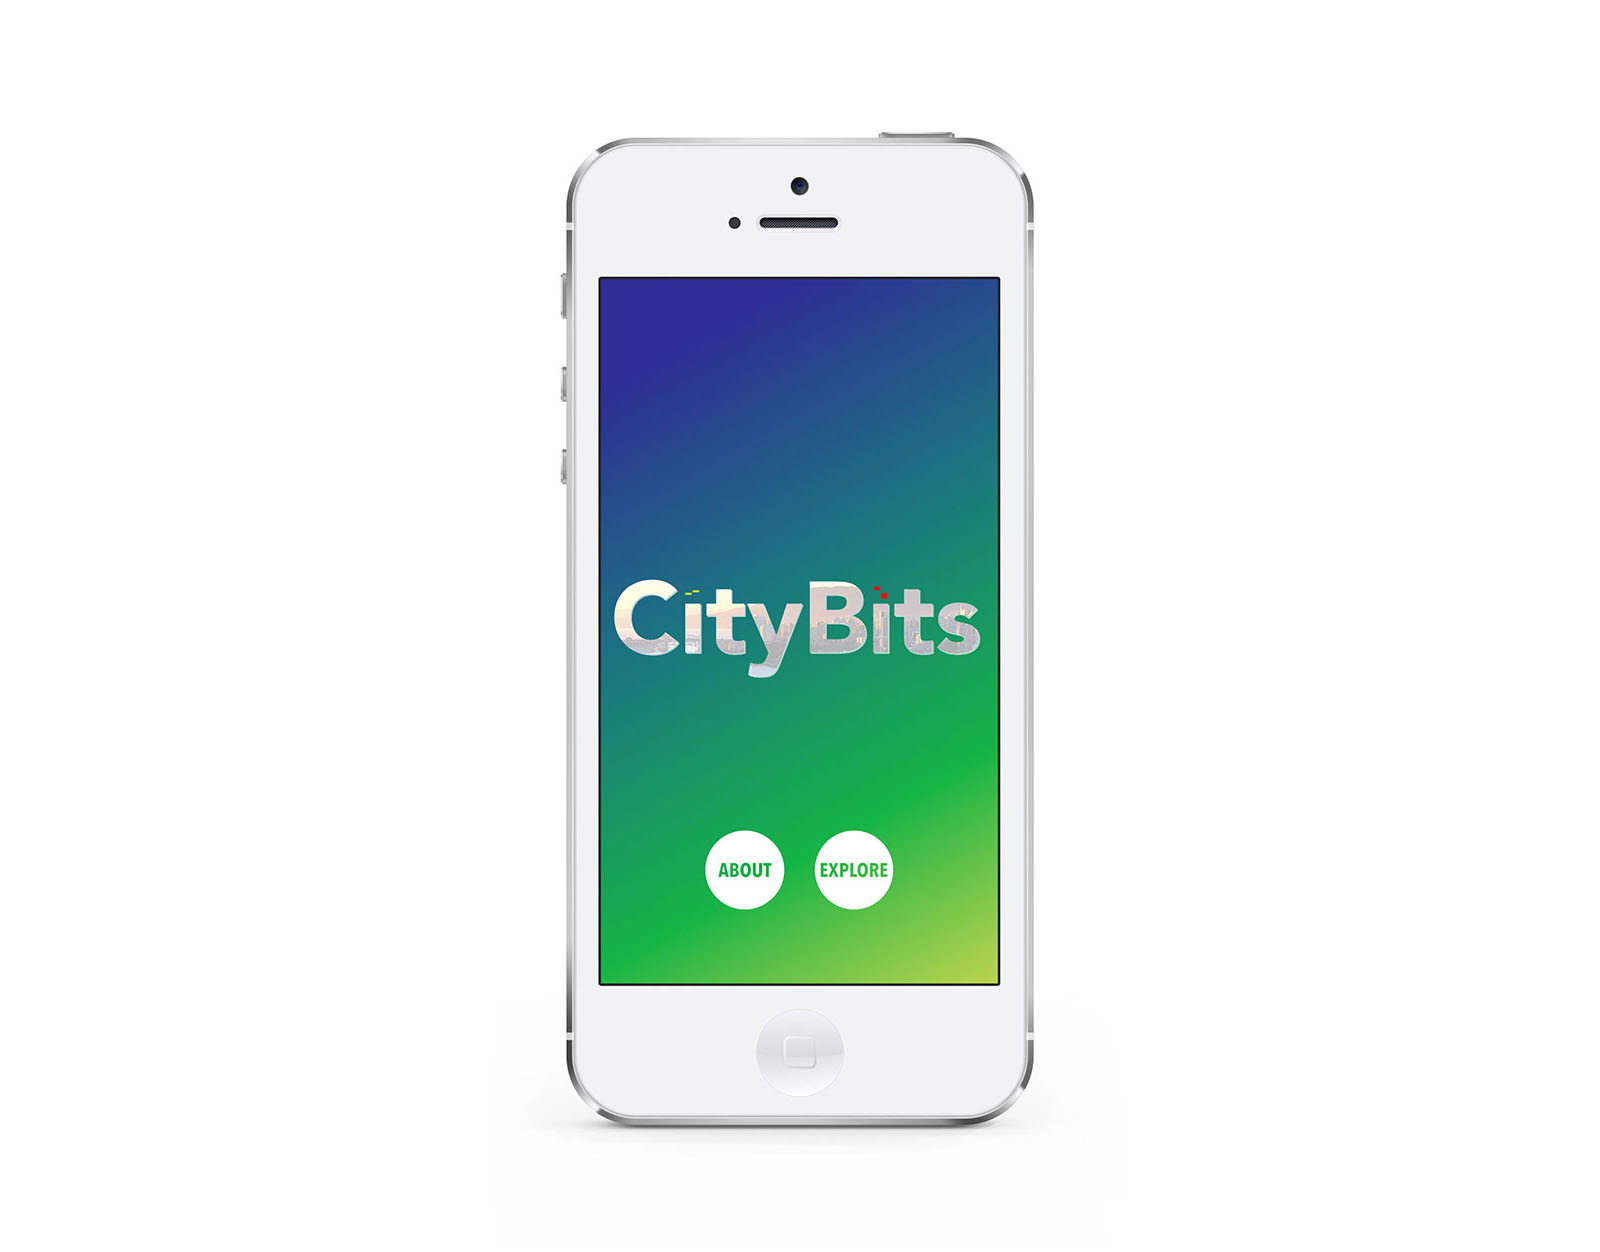 CityBits screen